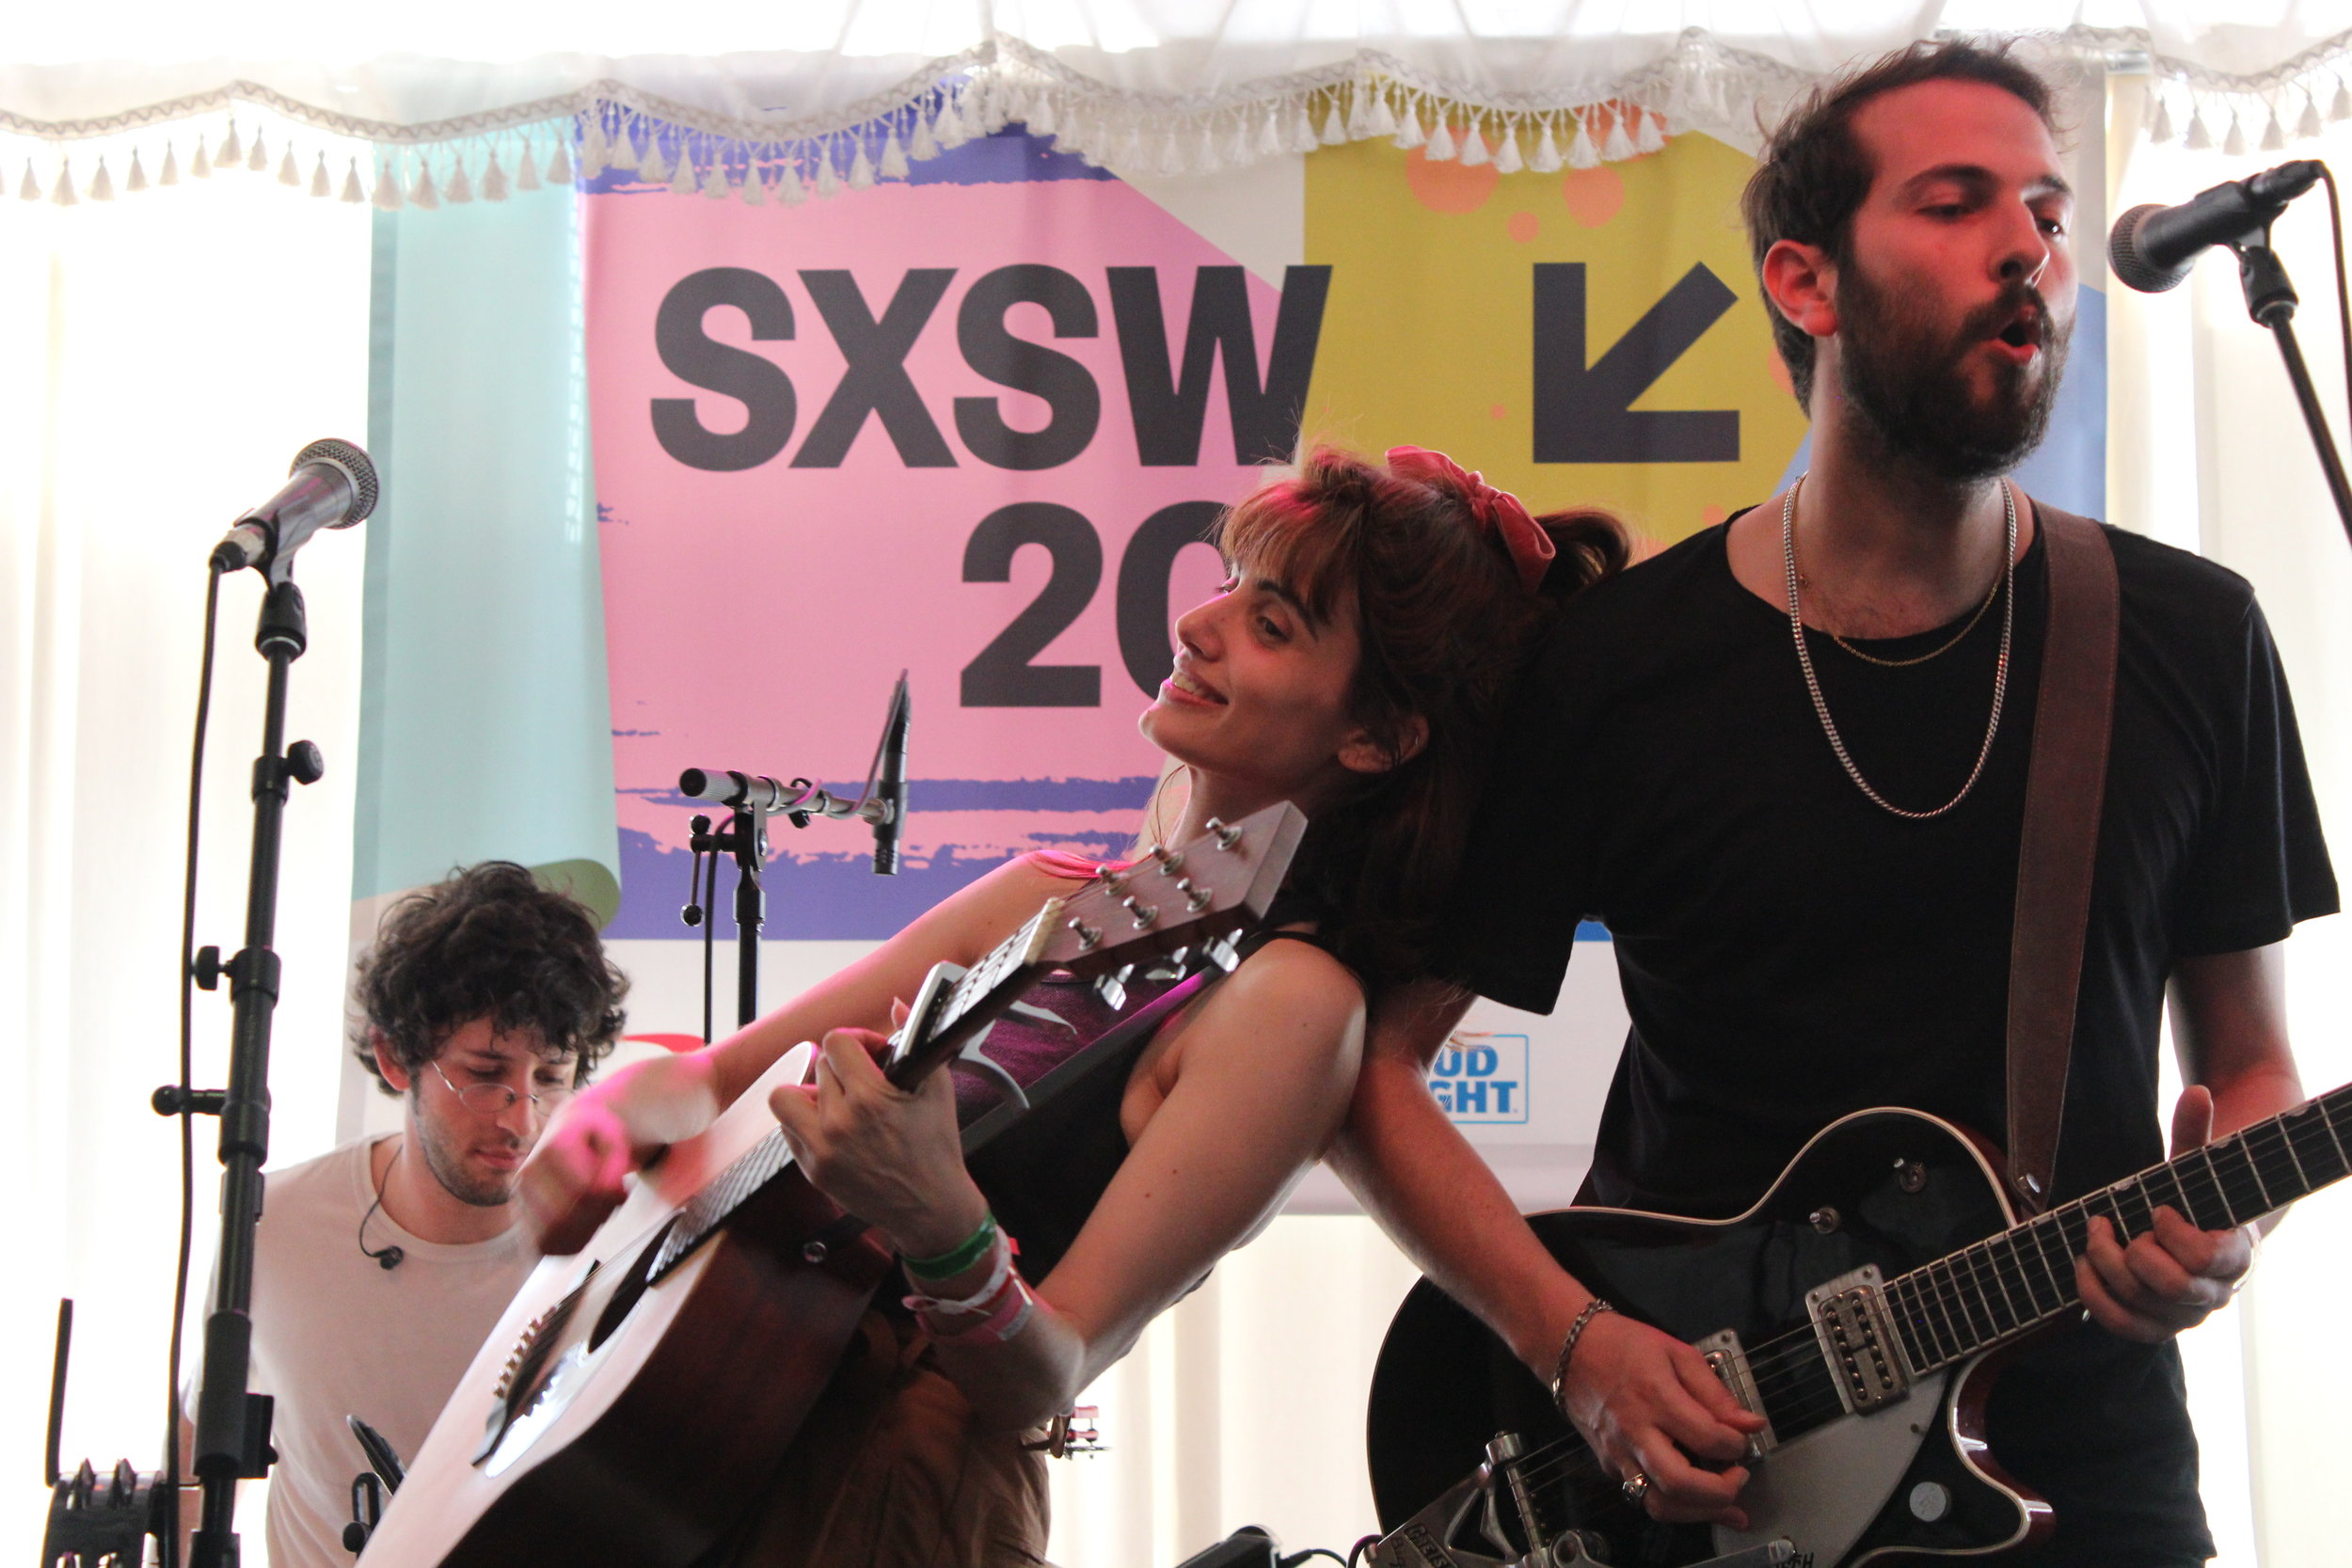 Tel Aviv-based Lola Marsh perform a stunning set at Swan Dive during SXSW Music Festival on March 17. Photo credit: Wendy Goodman